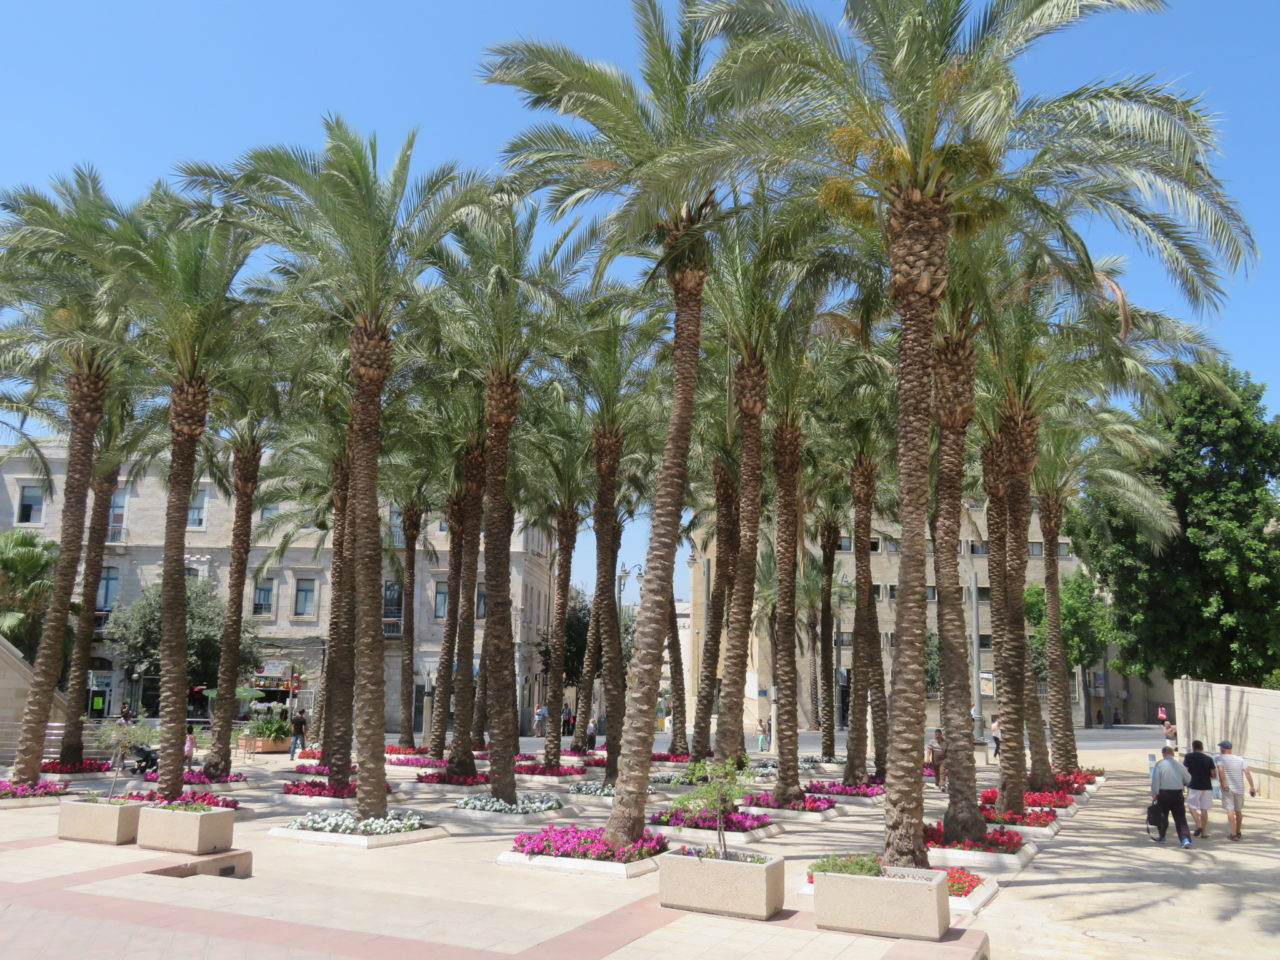 The joys of walking Jerusalem - Safra Square in the Russian Compound neighborhood